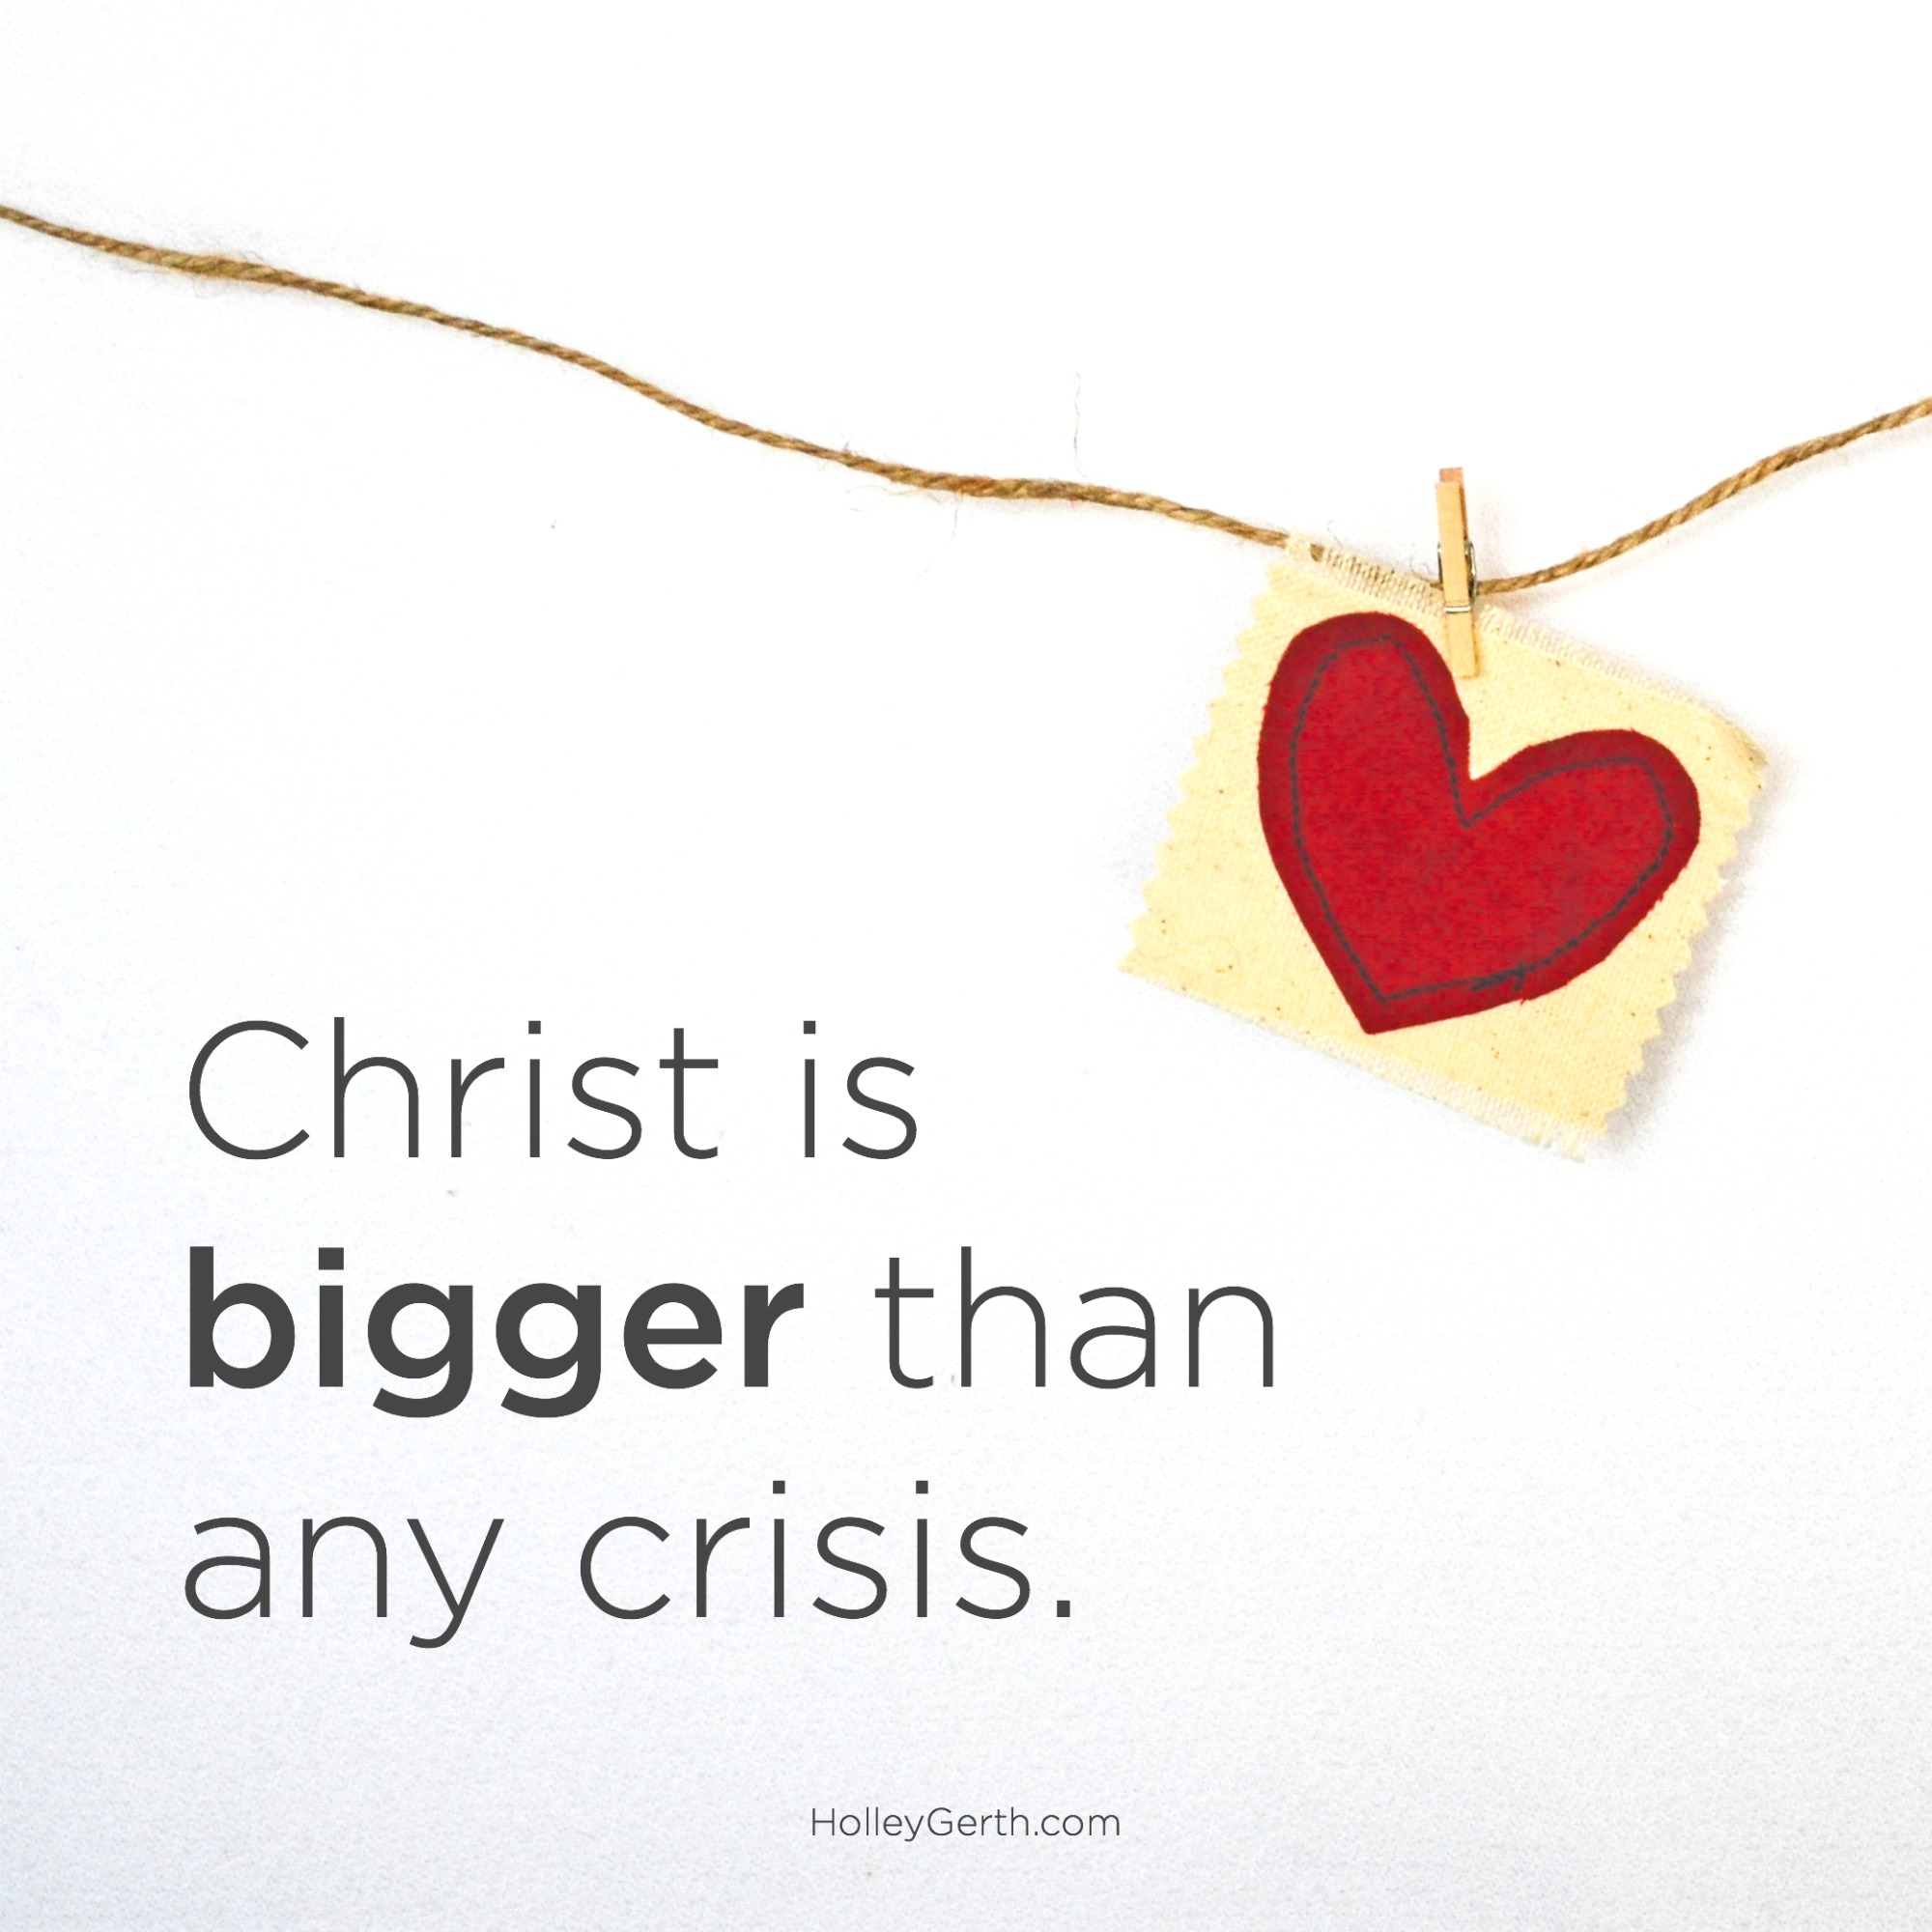 Christ is bigger than any crisis.